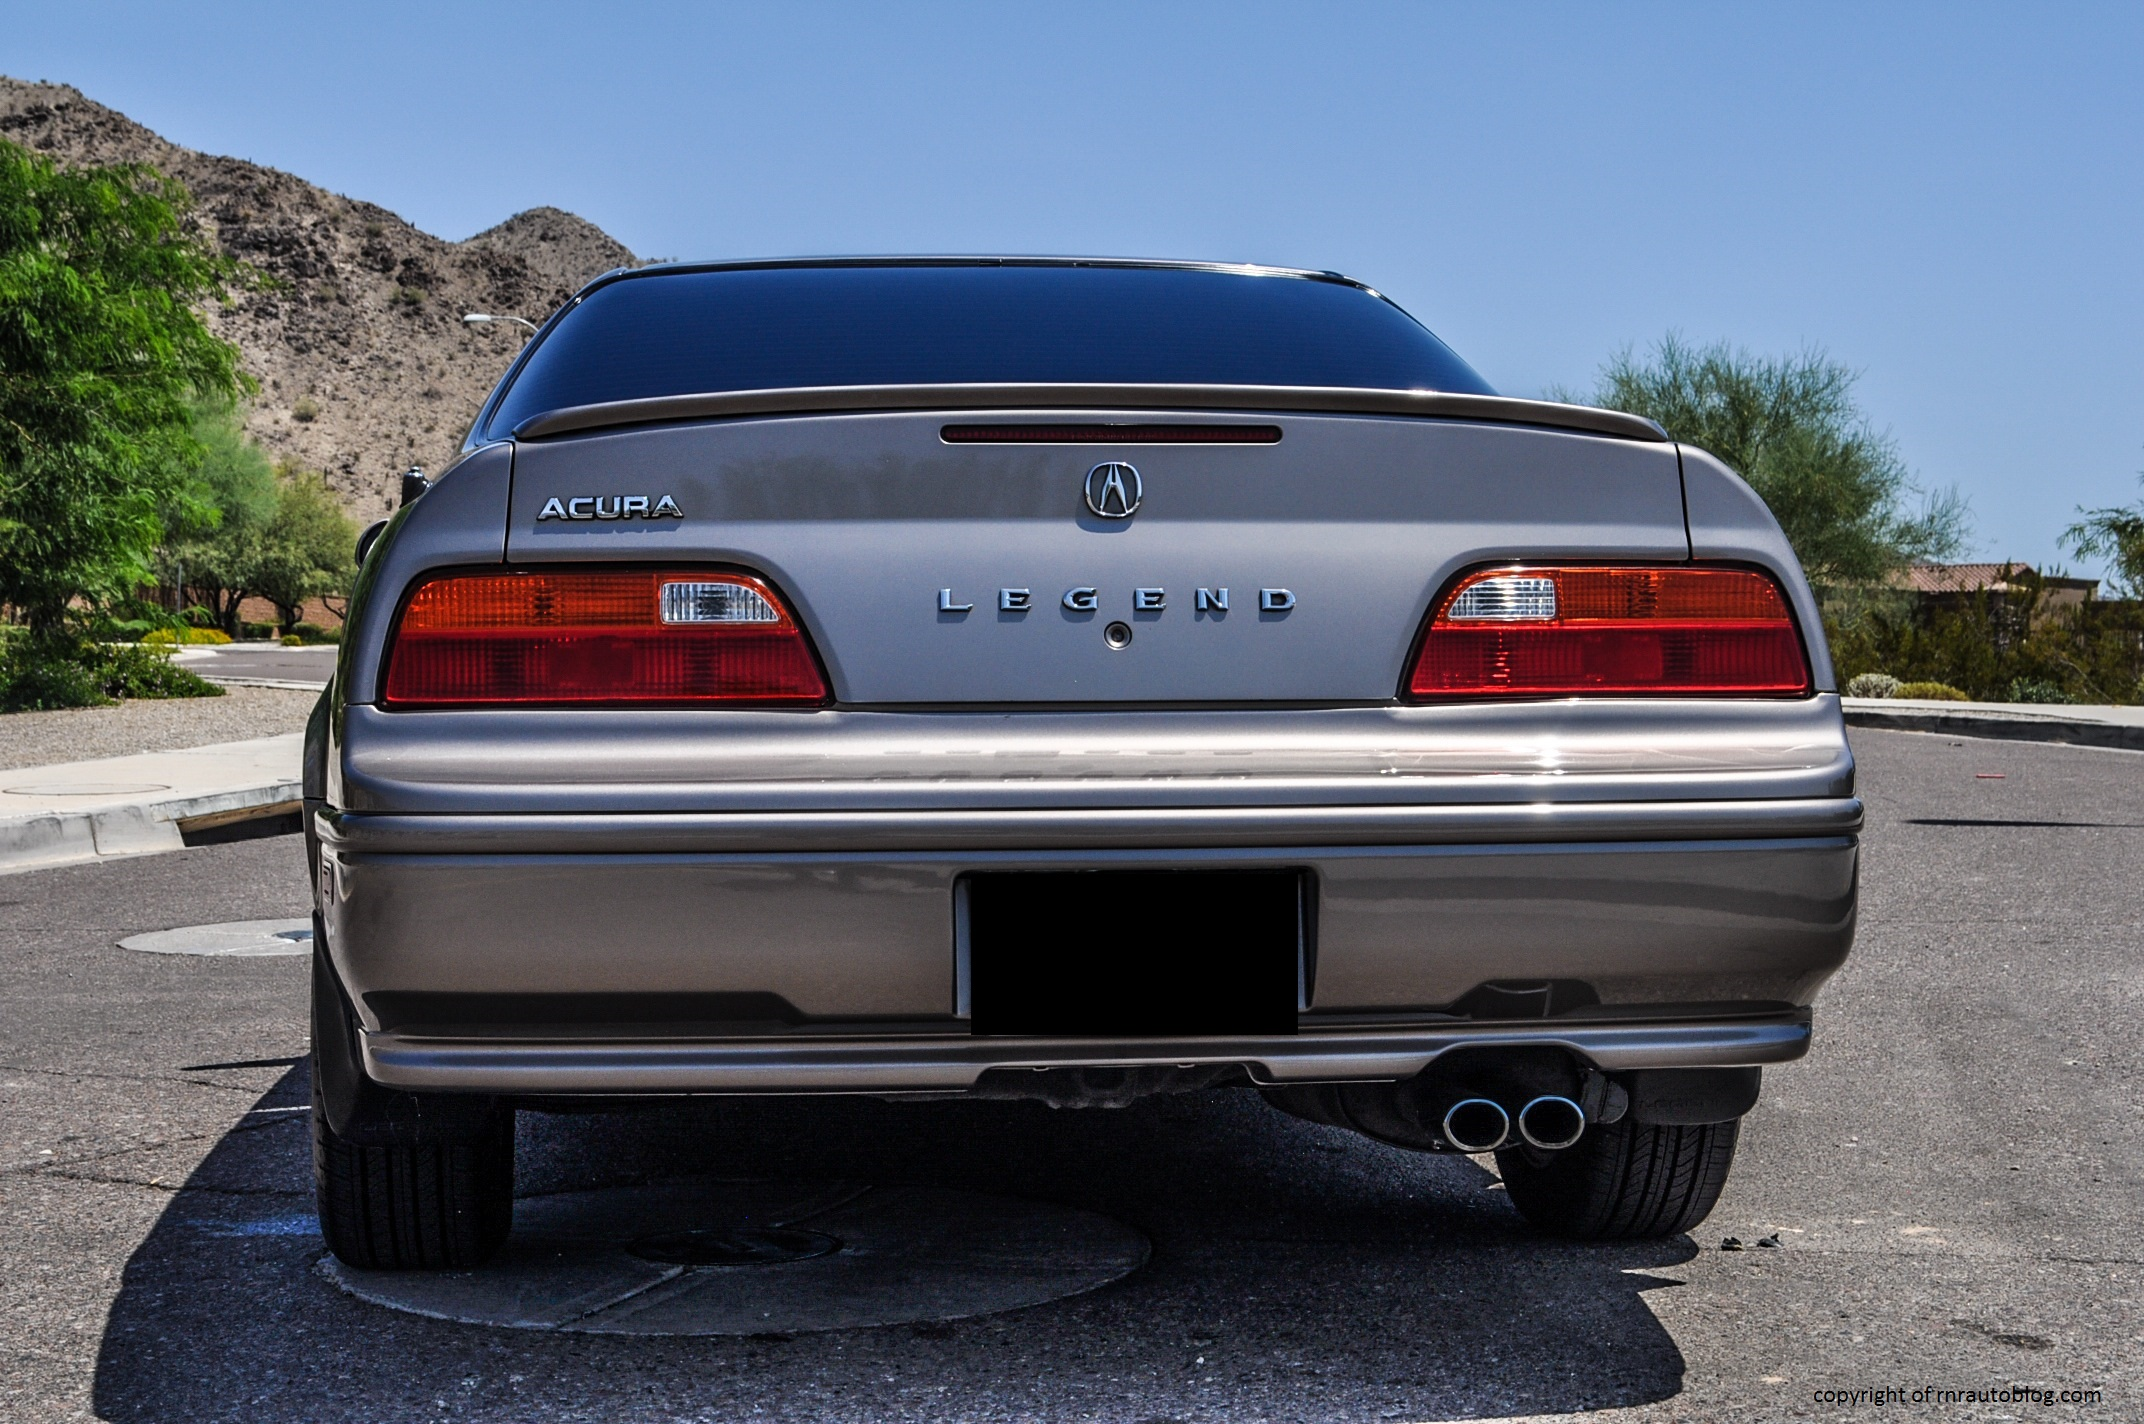 Acura Legend Ls Coupe And Gs Sedan Review Rnr Automotive Blog